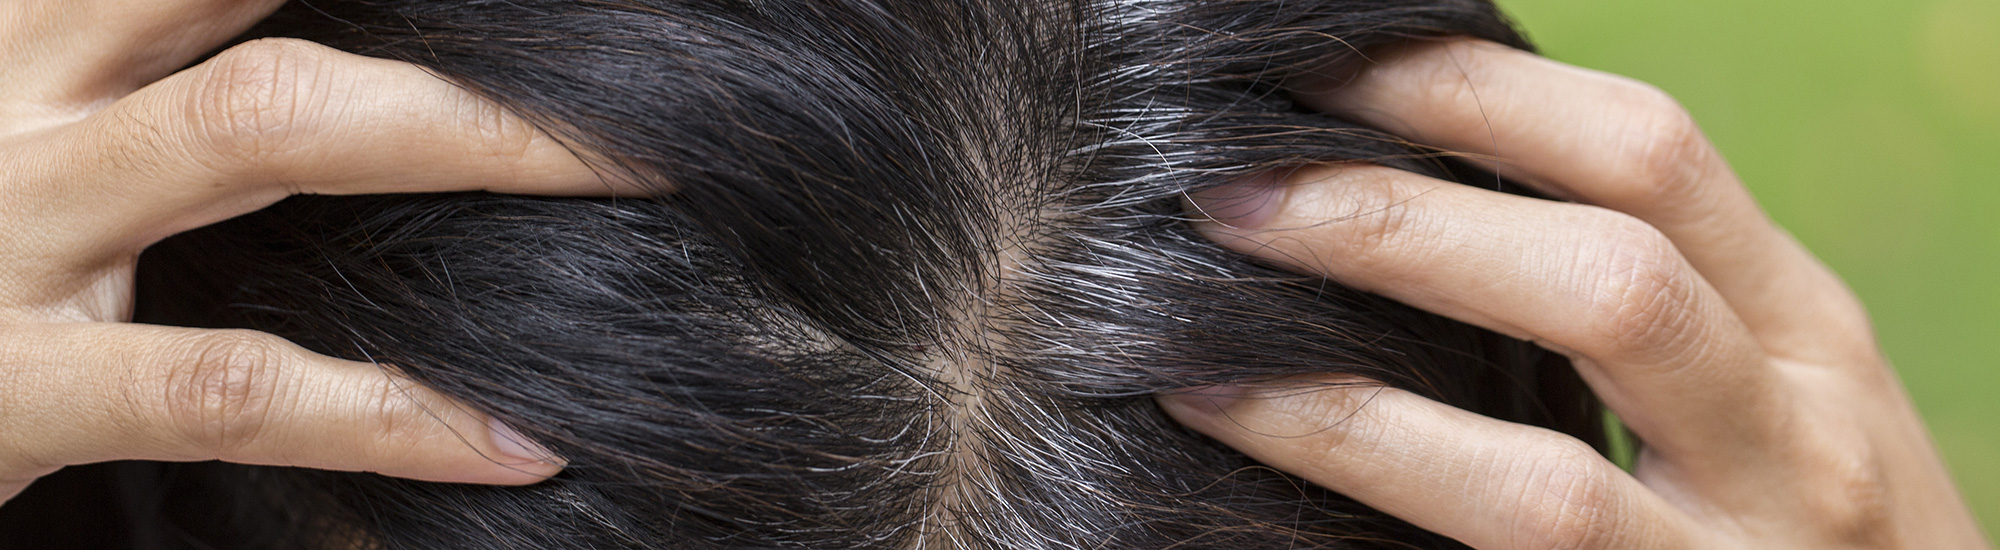 Ayurvedic treatment for Premature greying